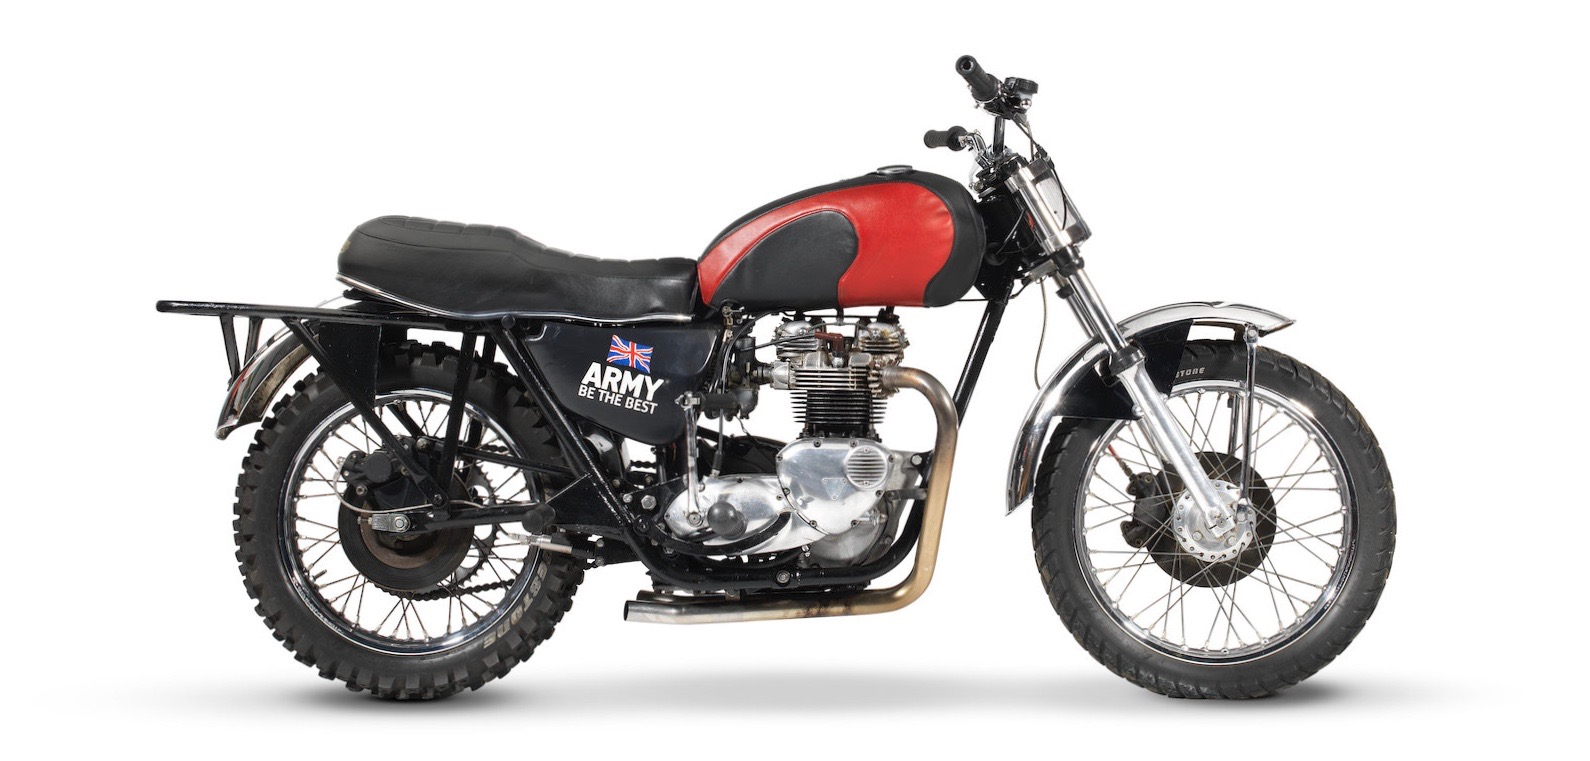 Triumph motorcycles used by British military team heading to auction